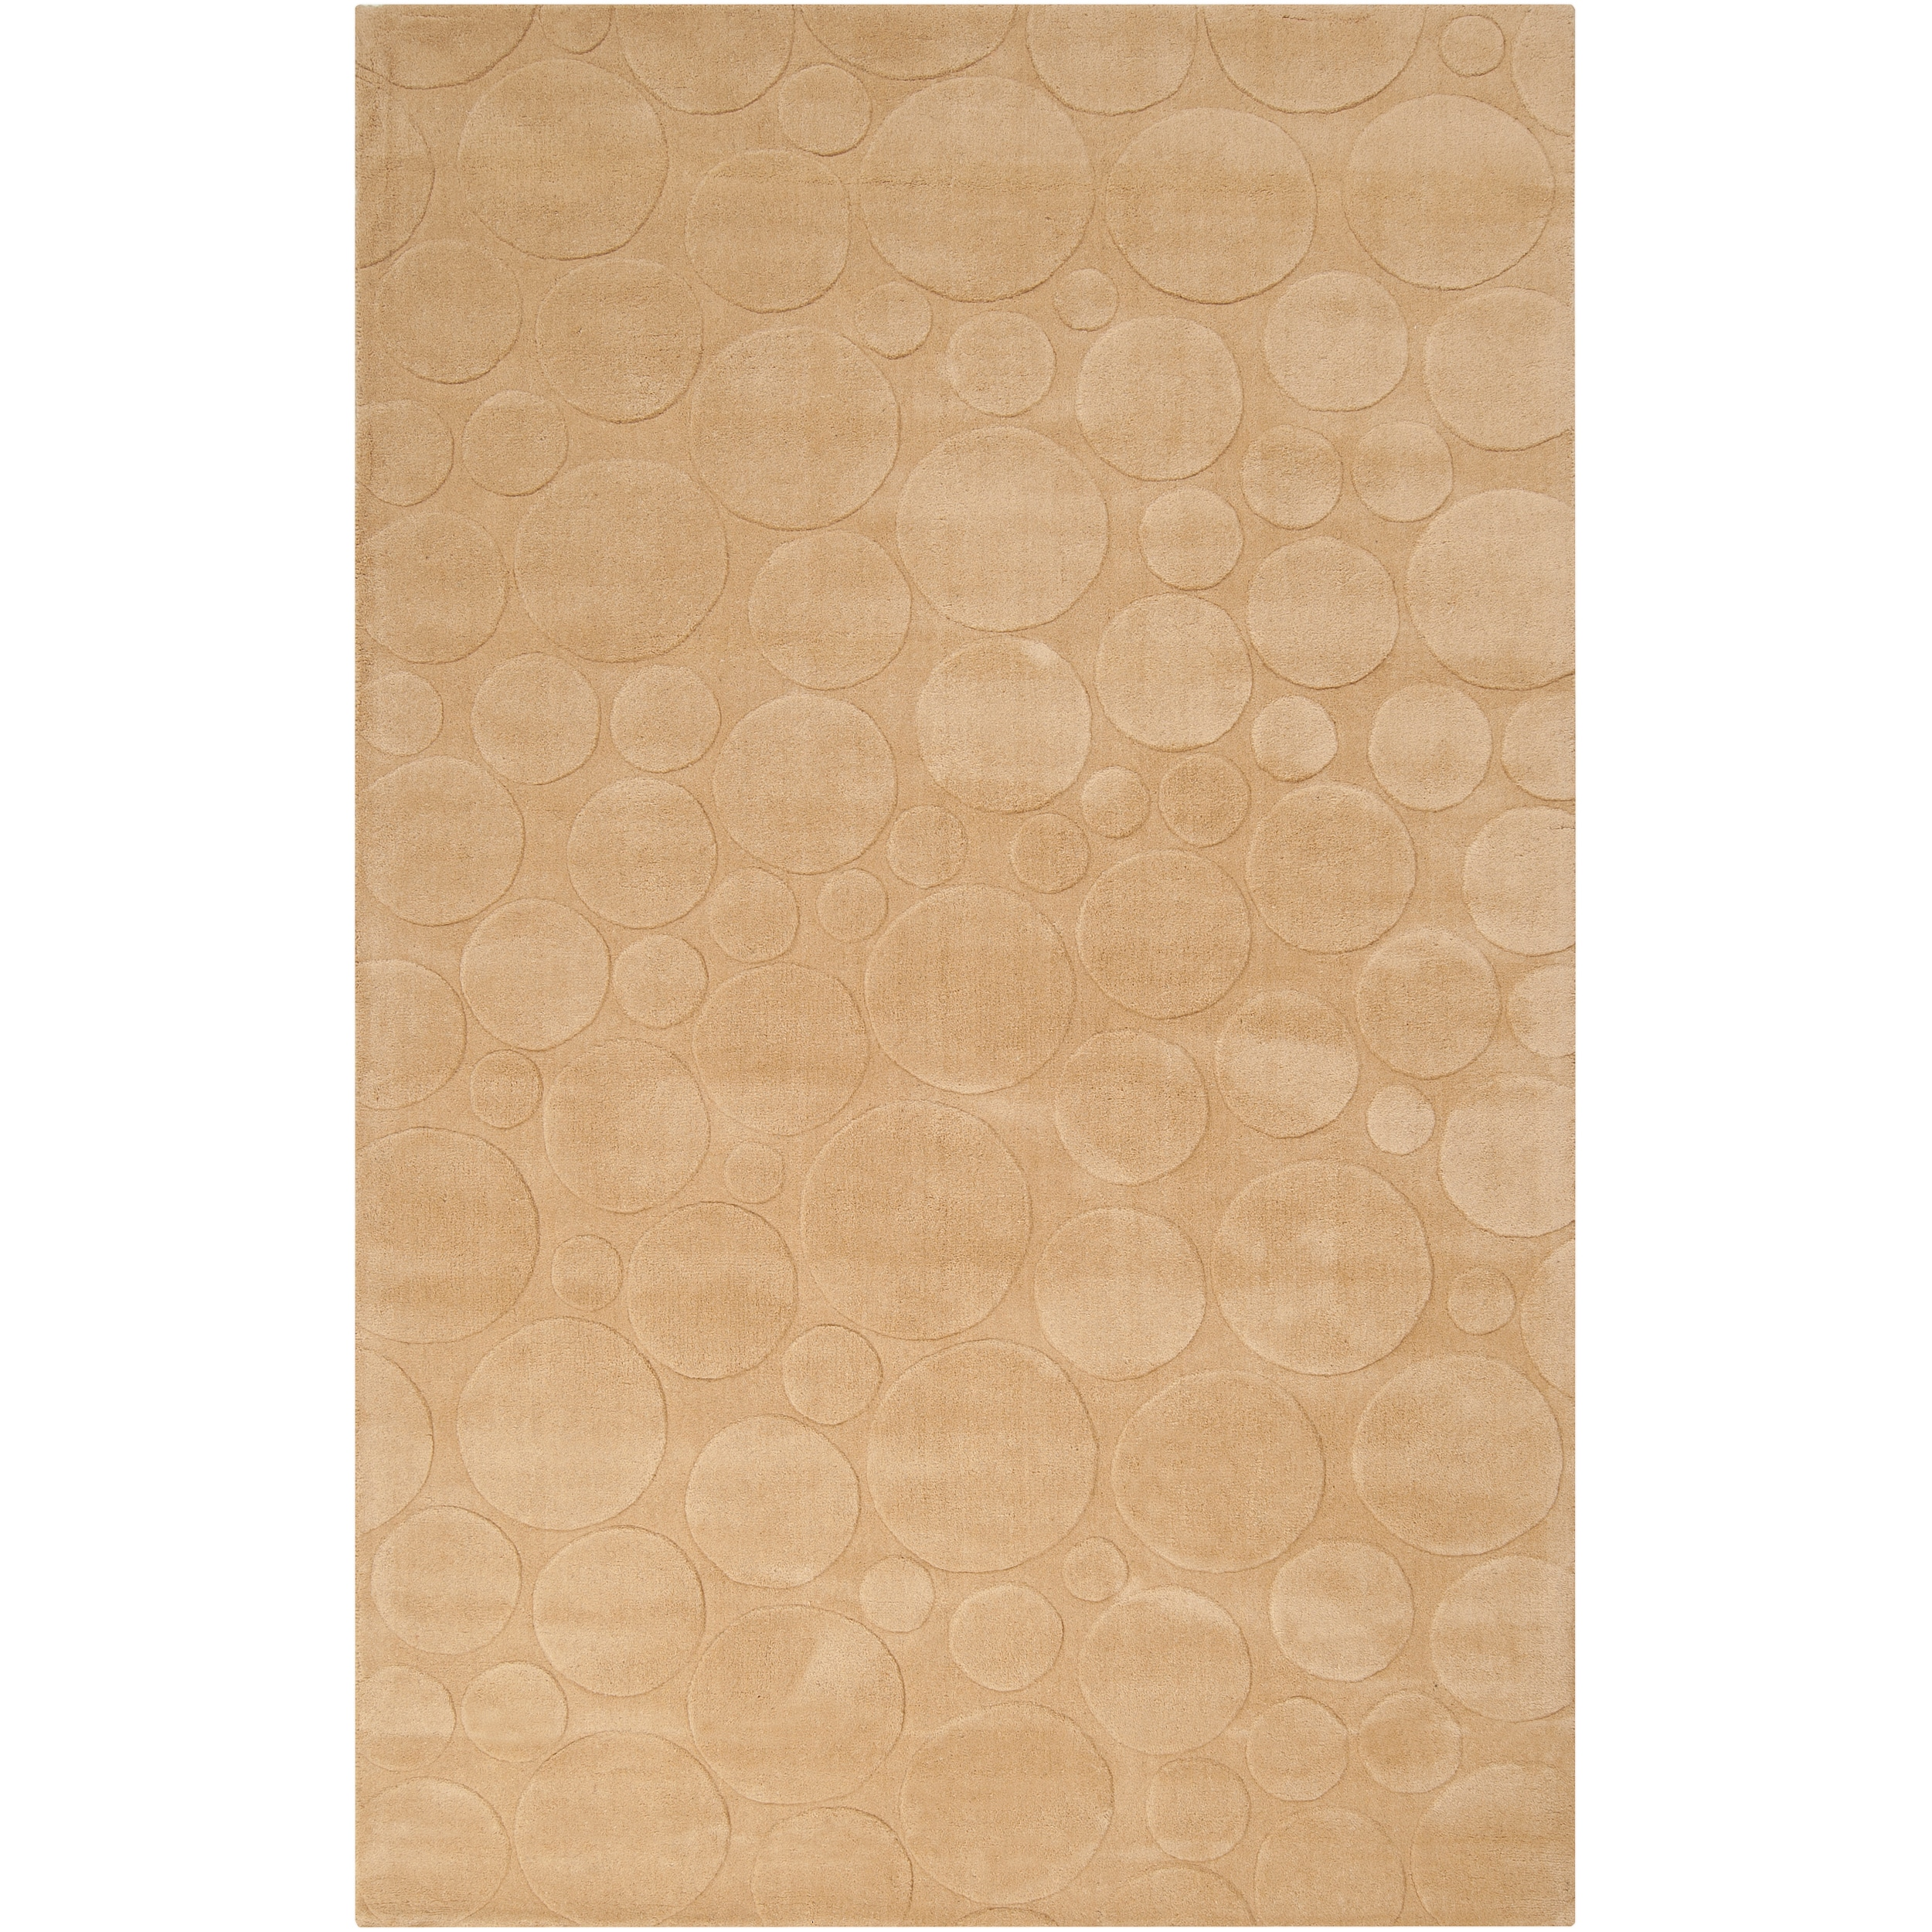 Loomed Tan Scrumptious Geometric Circles Indoor Wool Rug (5' x 8')